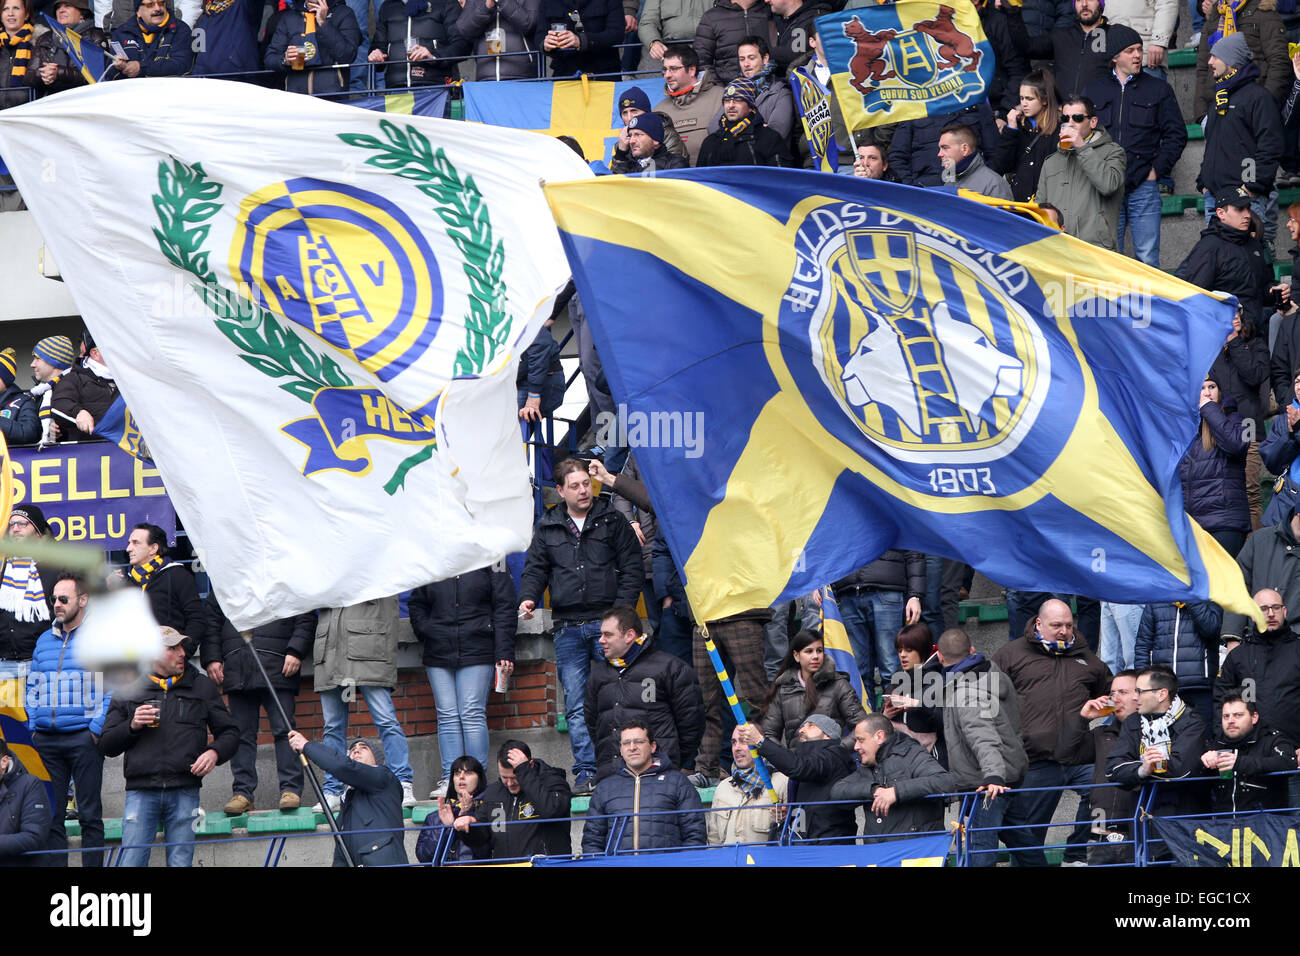 Verona, Italy. 22nd February, 2015. Hellas Verona's fans during the Italian Serie A football match between Verona - Stock Image